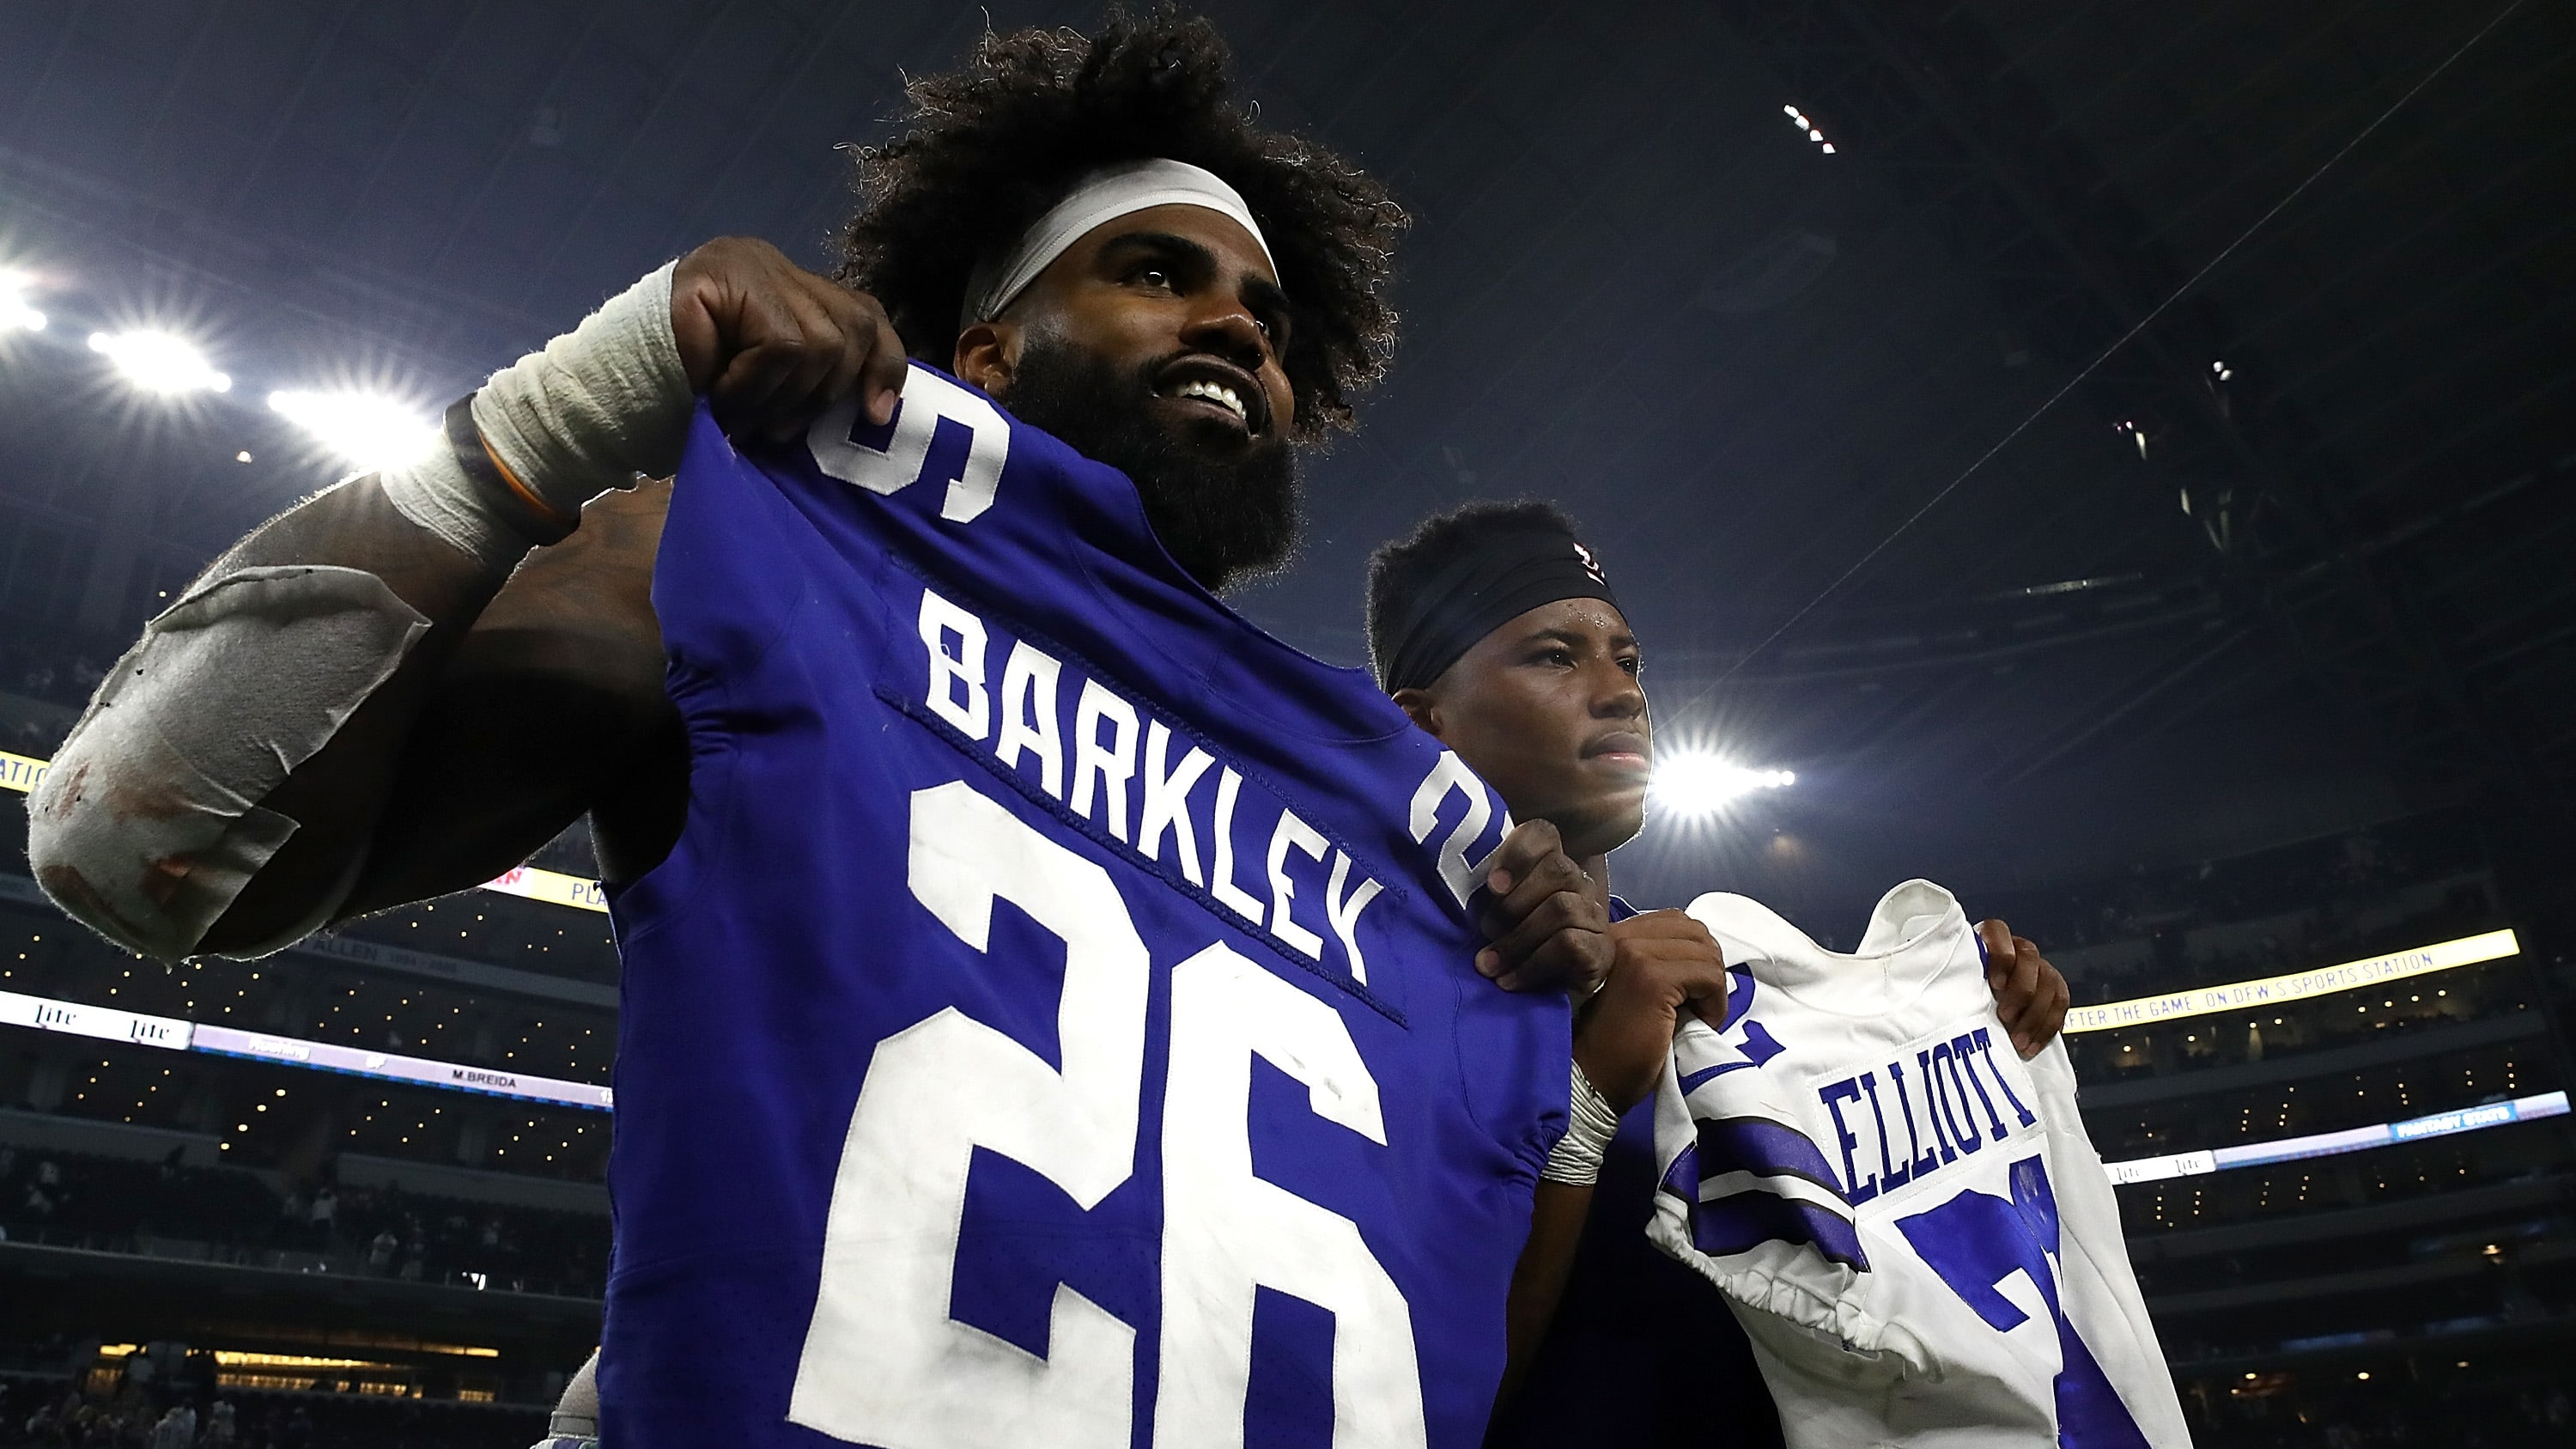 ARLINGTON, TX - SEPTEMBER 16:  (L-R) Ezekiel Elliott #21 of the Dallas Cowboys trades game jersey with Saquon Barkley #26 of the New York Giants at AT&T Stadium on September 16, 2018 in Arlington, Texas.  (Photo by Ronald Martinez/Getty Images)